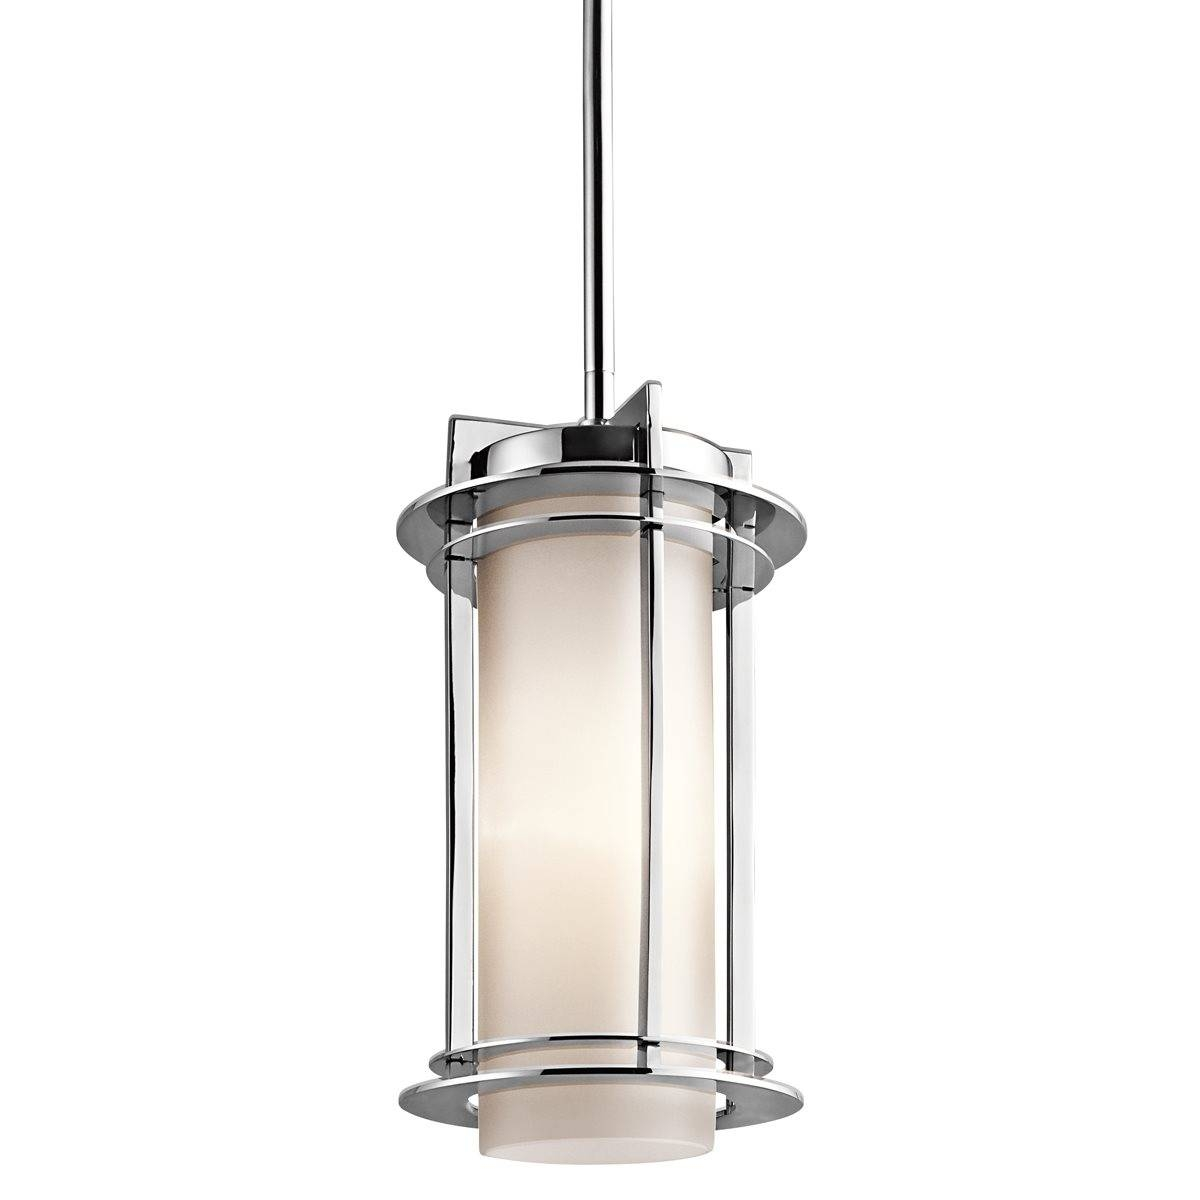 Amazing Pendant Outdoor Lighting 89 With Additional Mission Style for Mission Style Pendant Lights (Image 2 of 15)